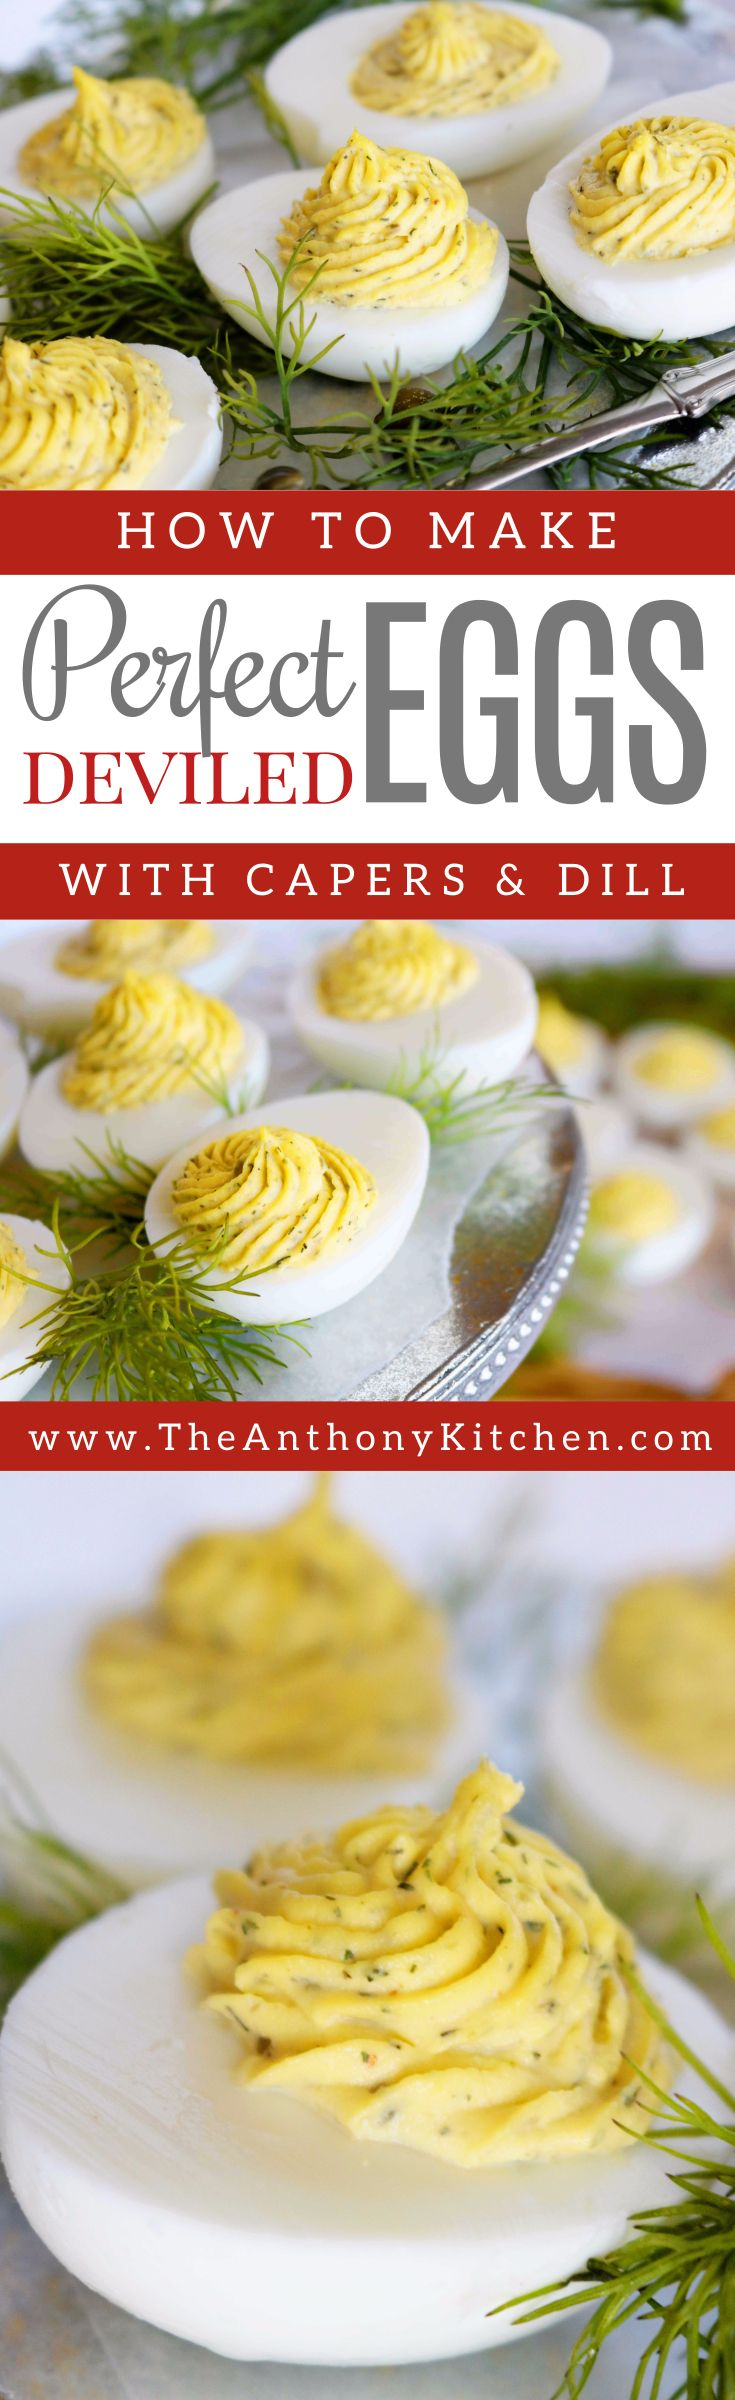 Best Delived Eggs Recipe | A recipe for Southern deviled eggs, featuring capers, tarragon vinegar, and Dijon mustard to givethis delicacy a unique edge | #fingerfood #partyfood #appetizers #classyappetizers